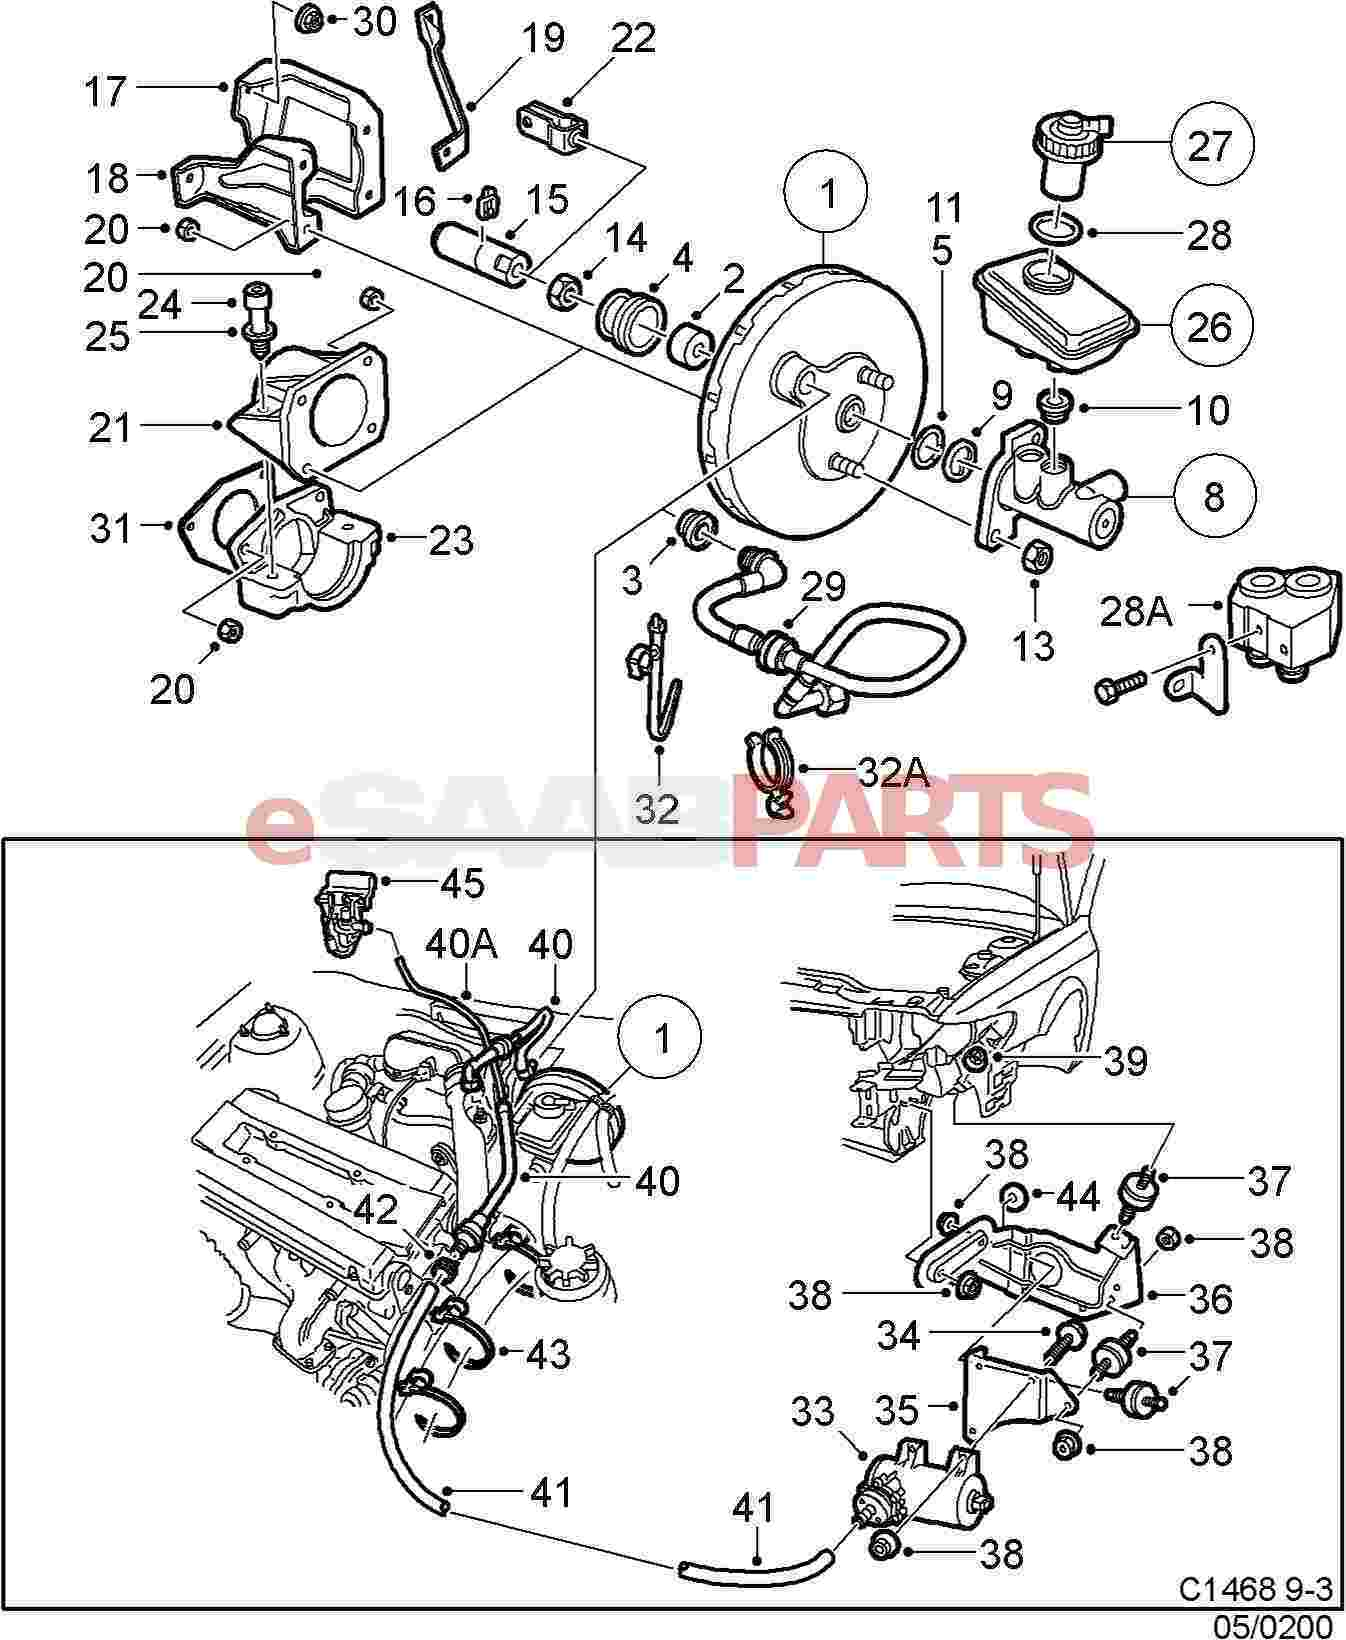 93 saab 900 ignition switch wiring diagram